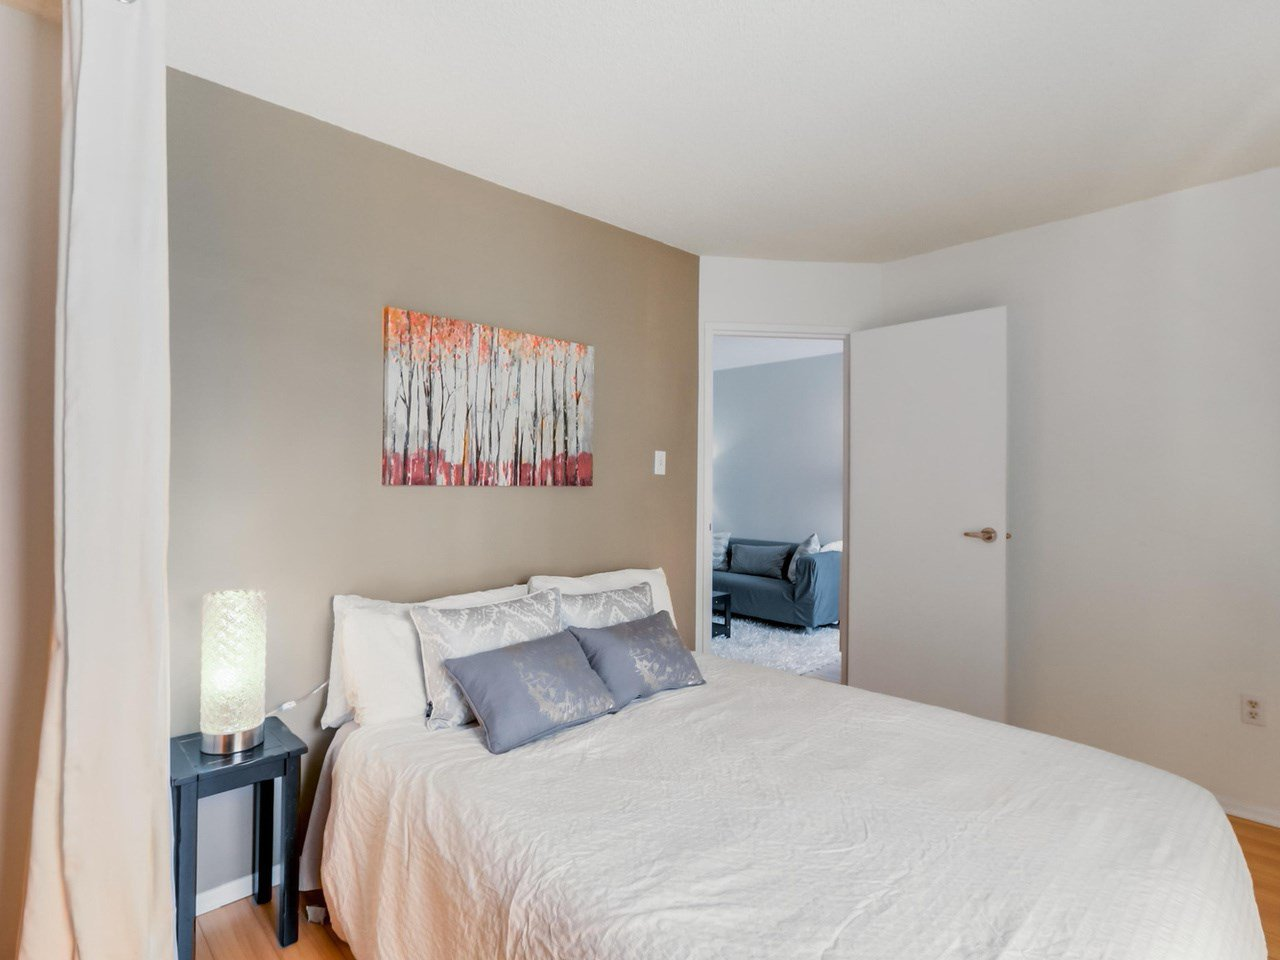 """Photo 16: Photos: 207 1545 E 2ND Avenue in Vancouver: Grandview VE Condo for sale in """"TALISHAN WOODS"""" (Vancouver East)  : MLS®# R2086466"""